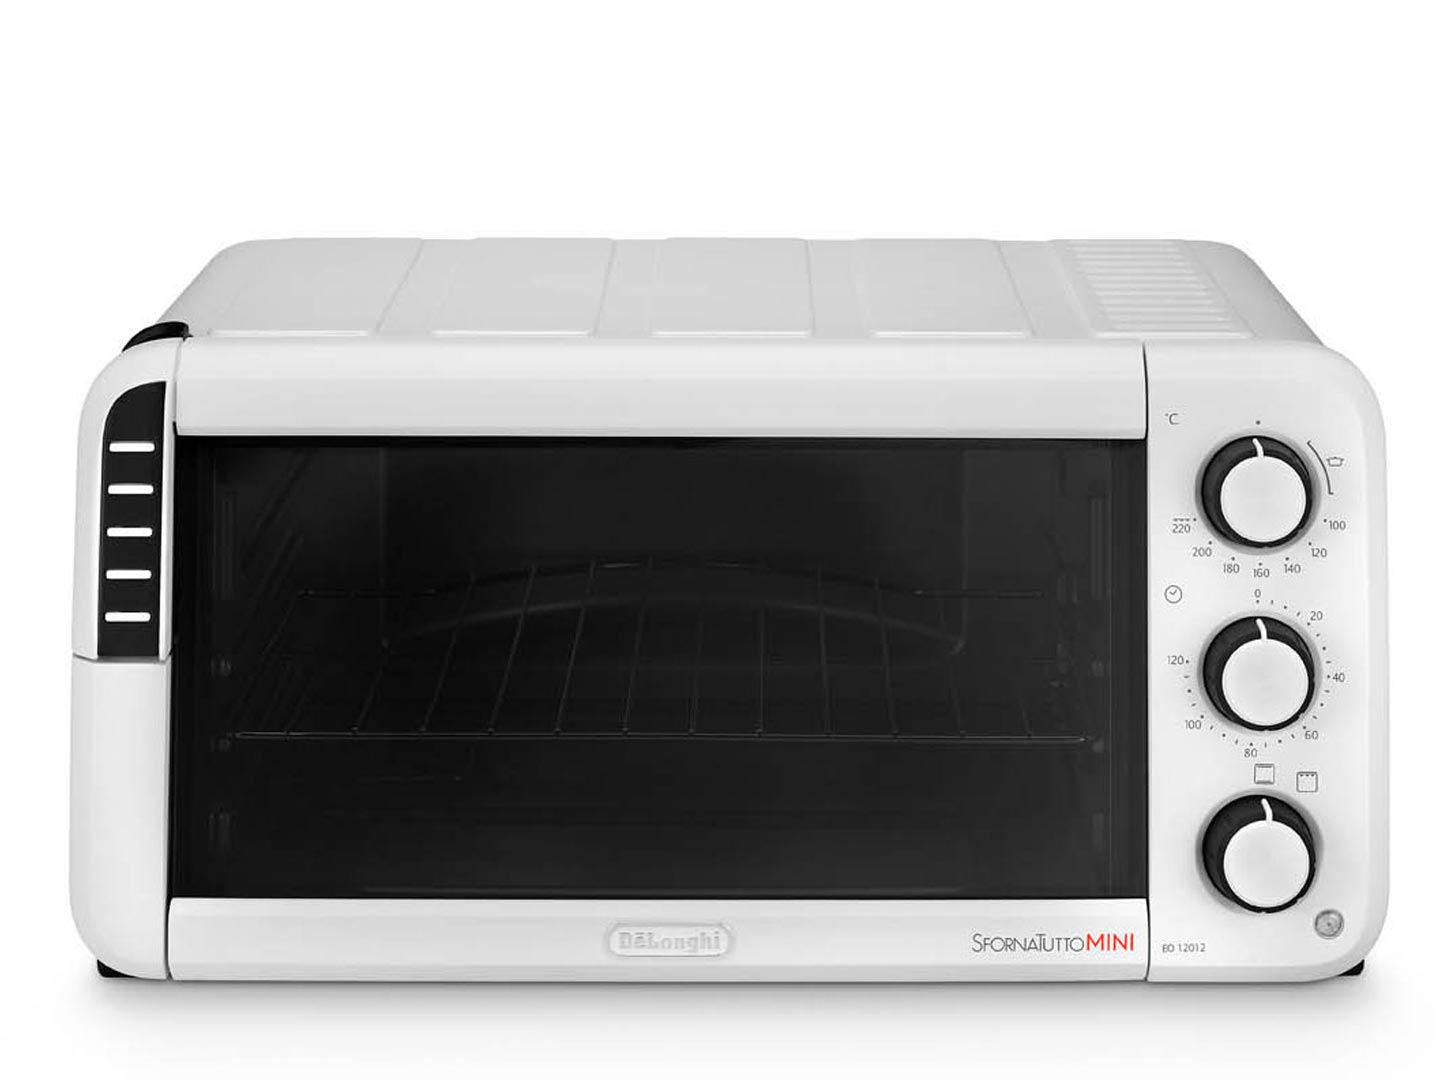 Delonghi Microwave Oven Bestmicrowave